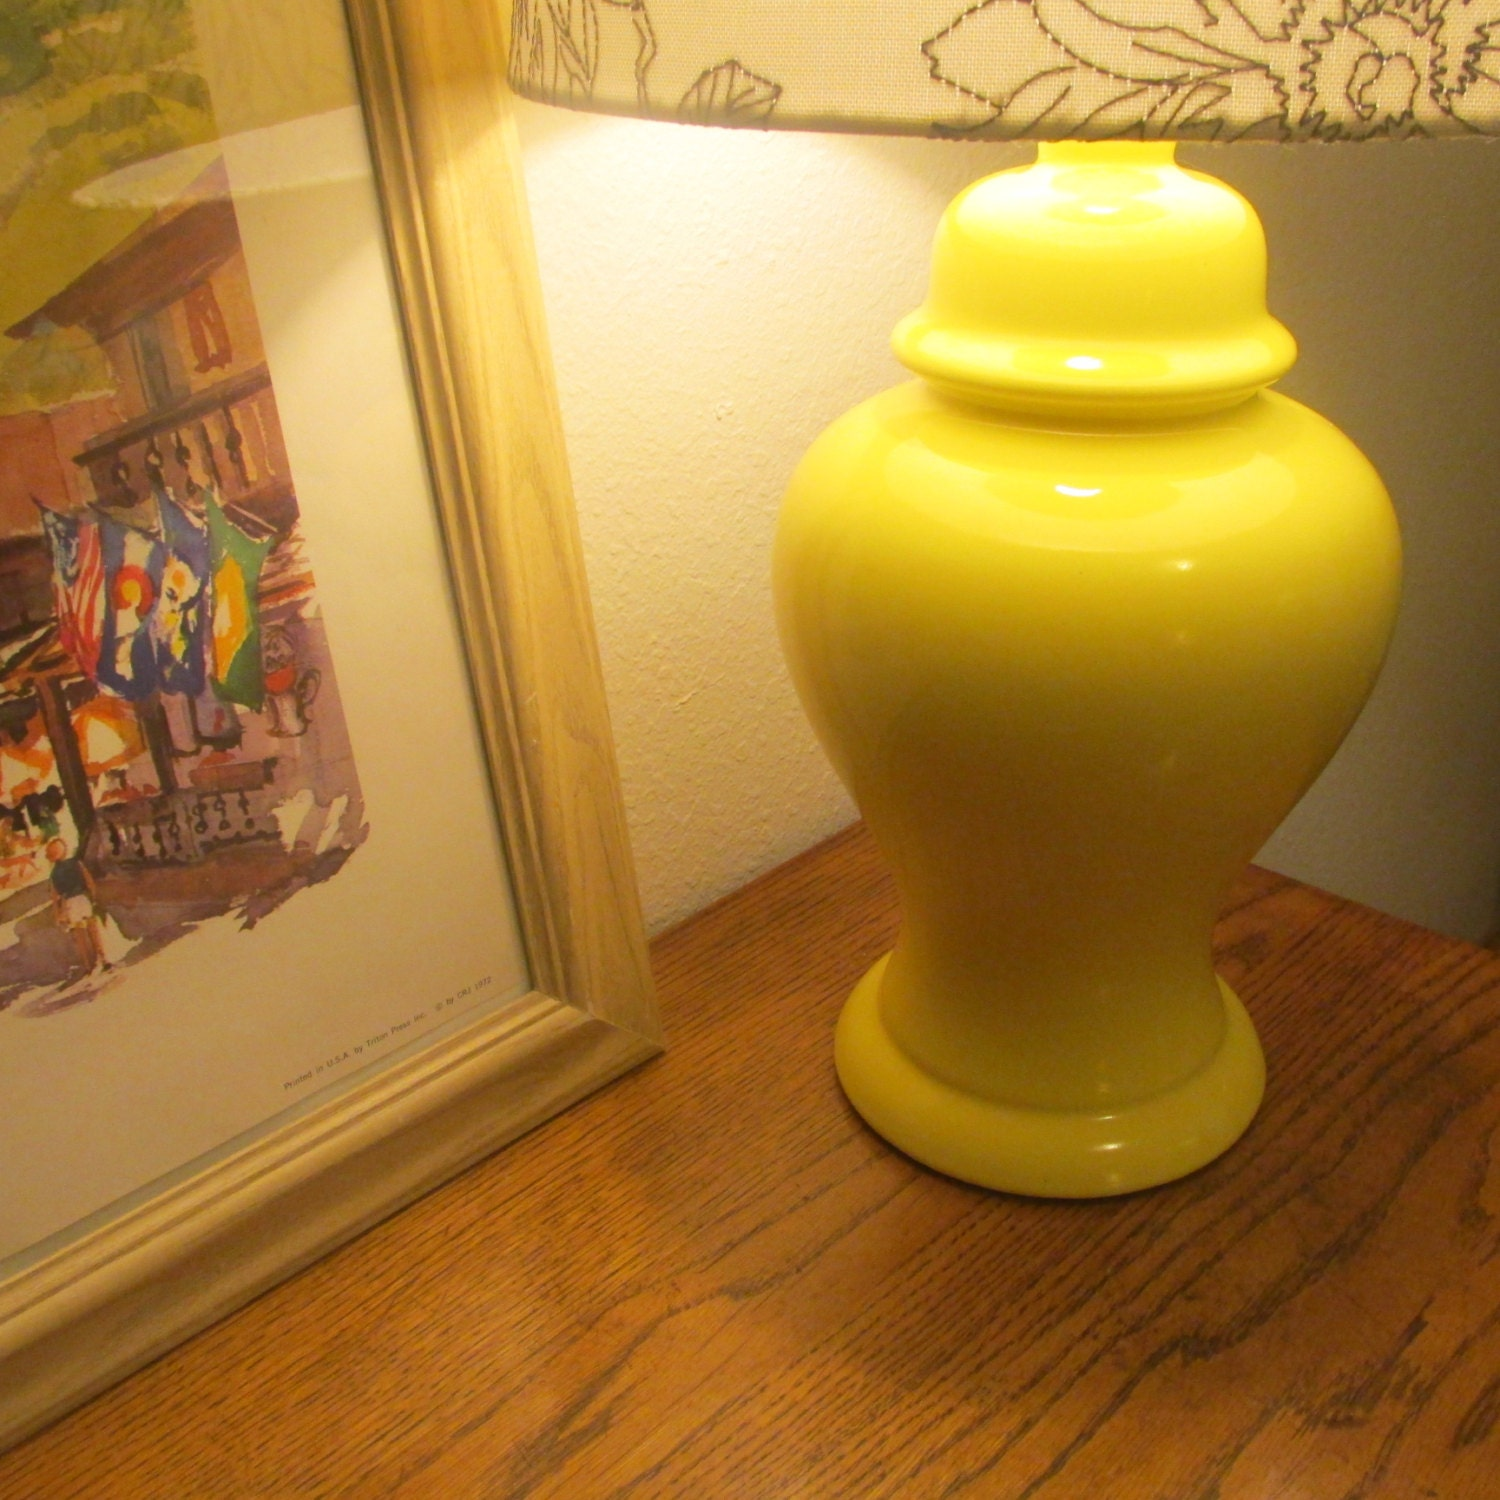 70s Ginger Jar Lamp Without Lamp Shade